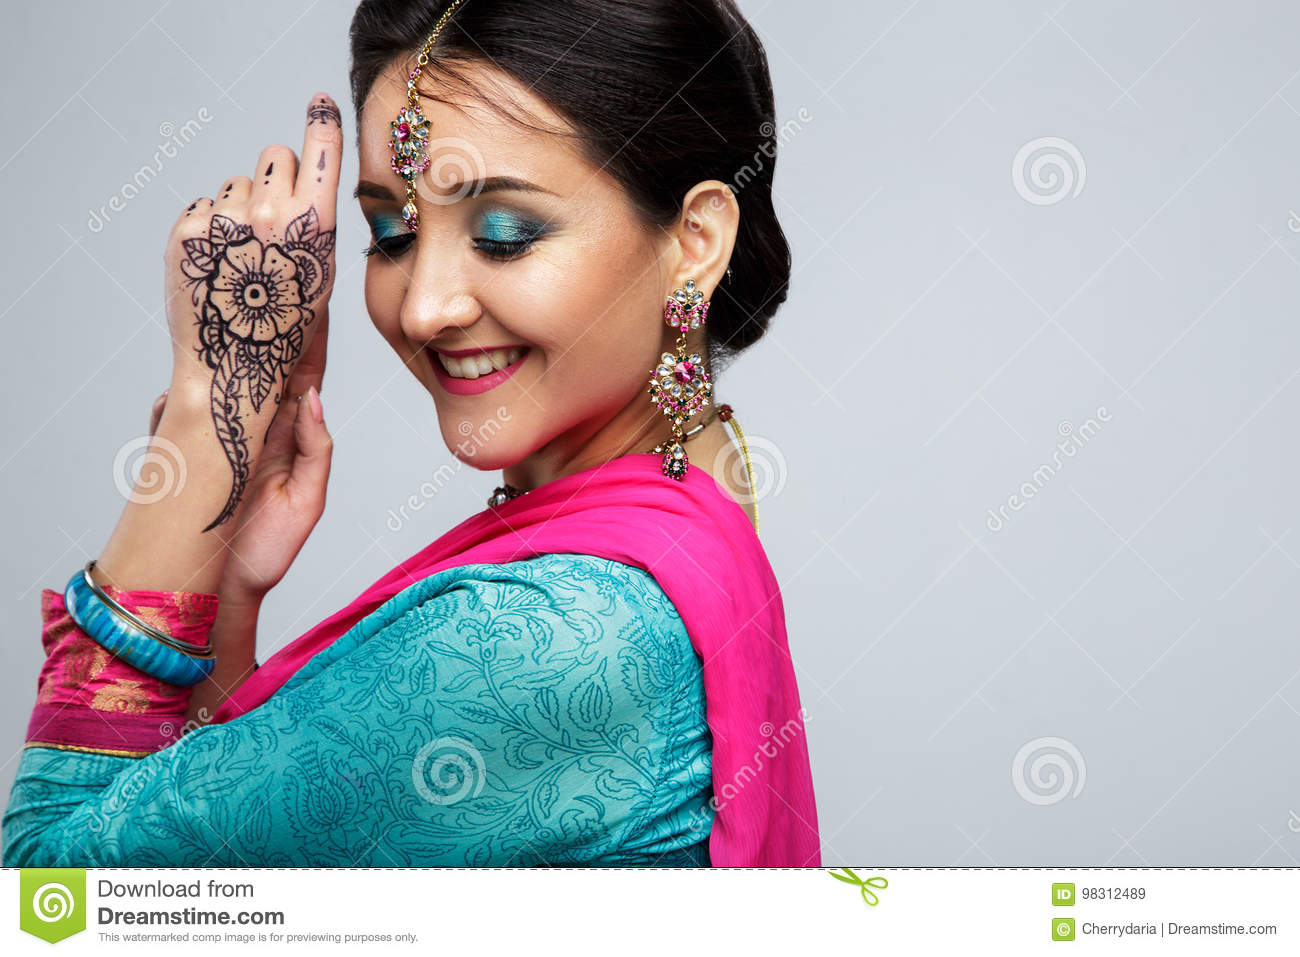 087d20c945 Portrait of beautiful smiling indian girl. Young indian woman model with  traditional jewelry set